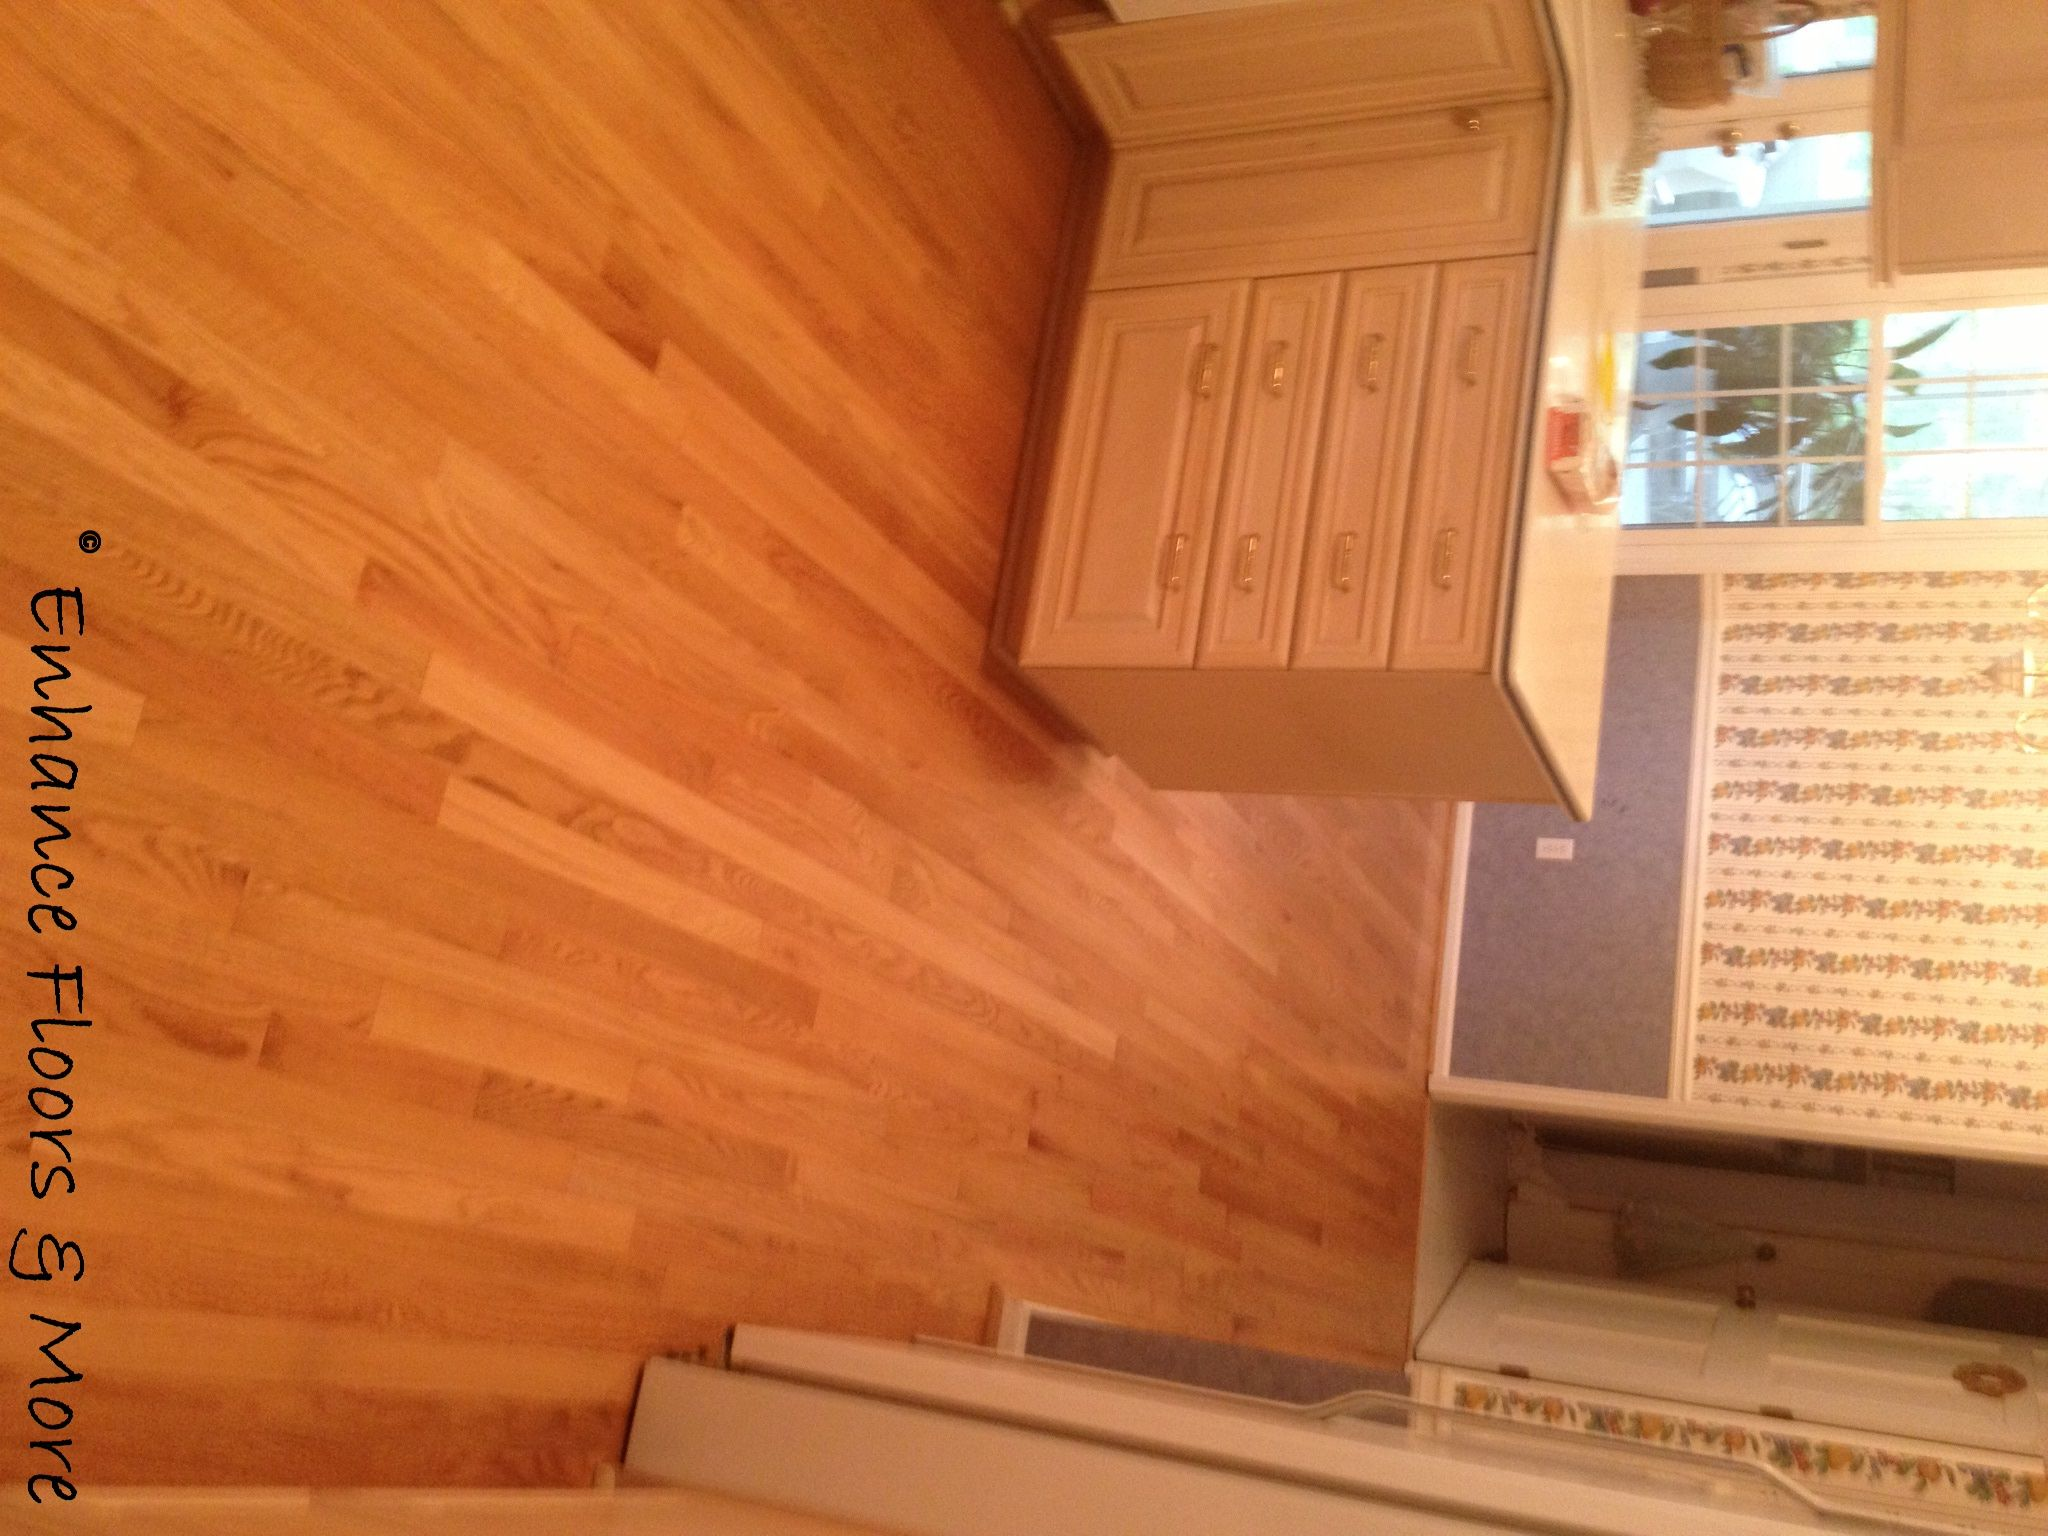 Red oak natural hardwood floor hardwood floors pinterest for Natural red oak floors